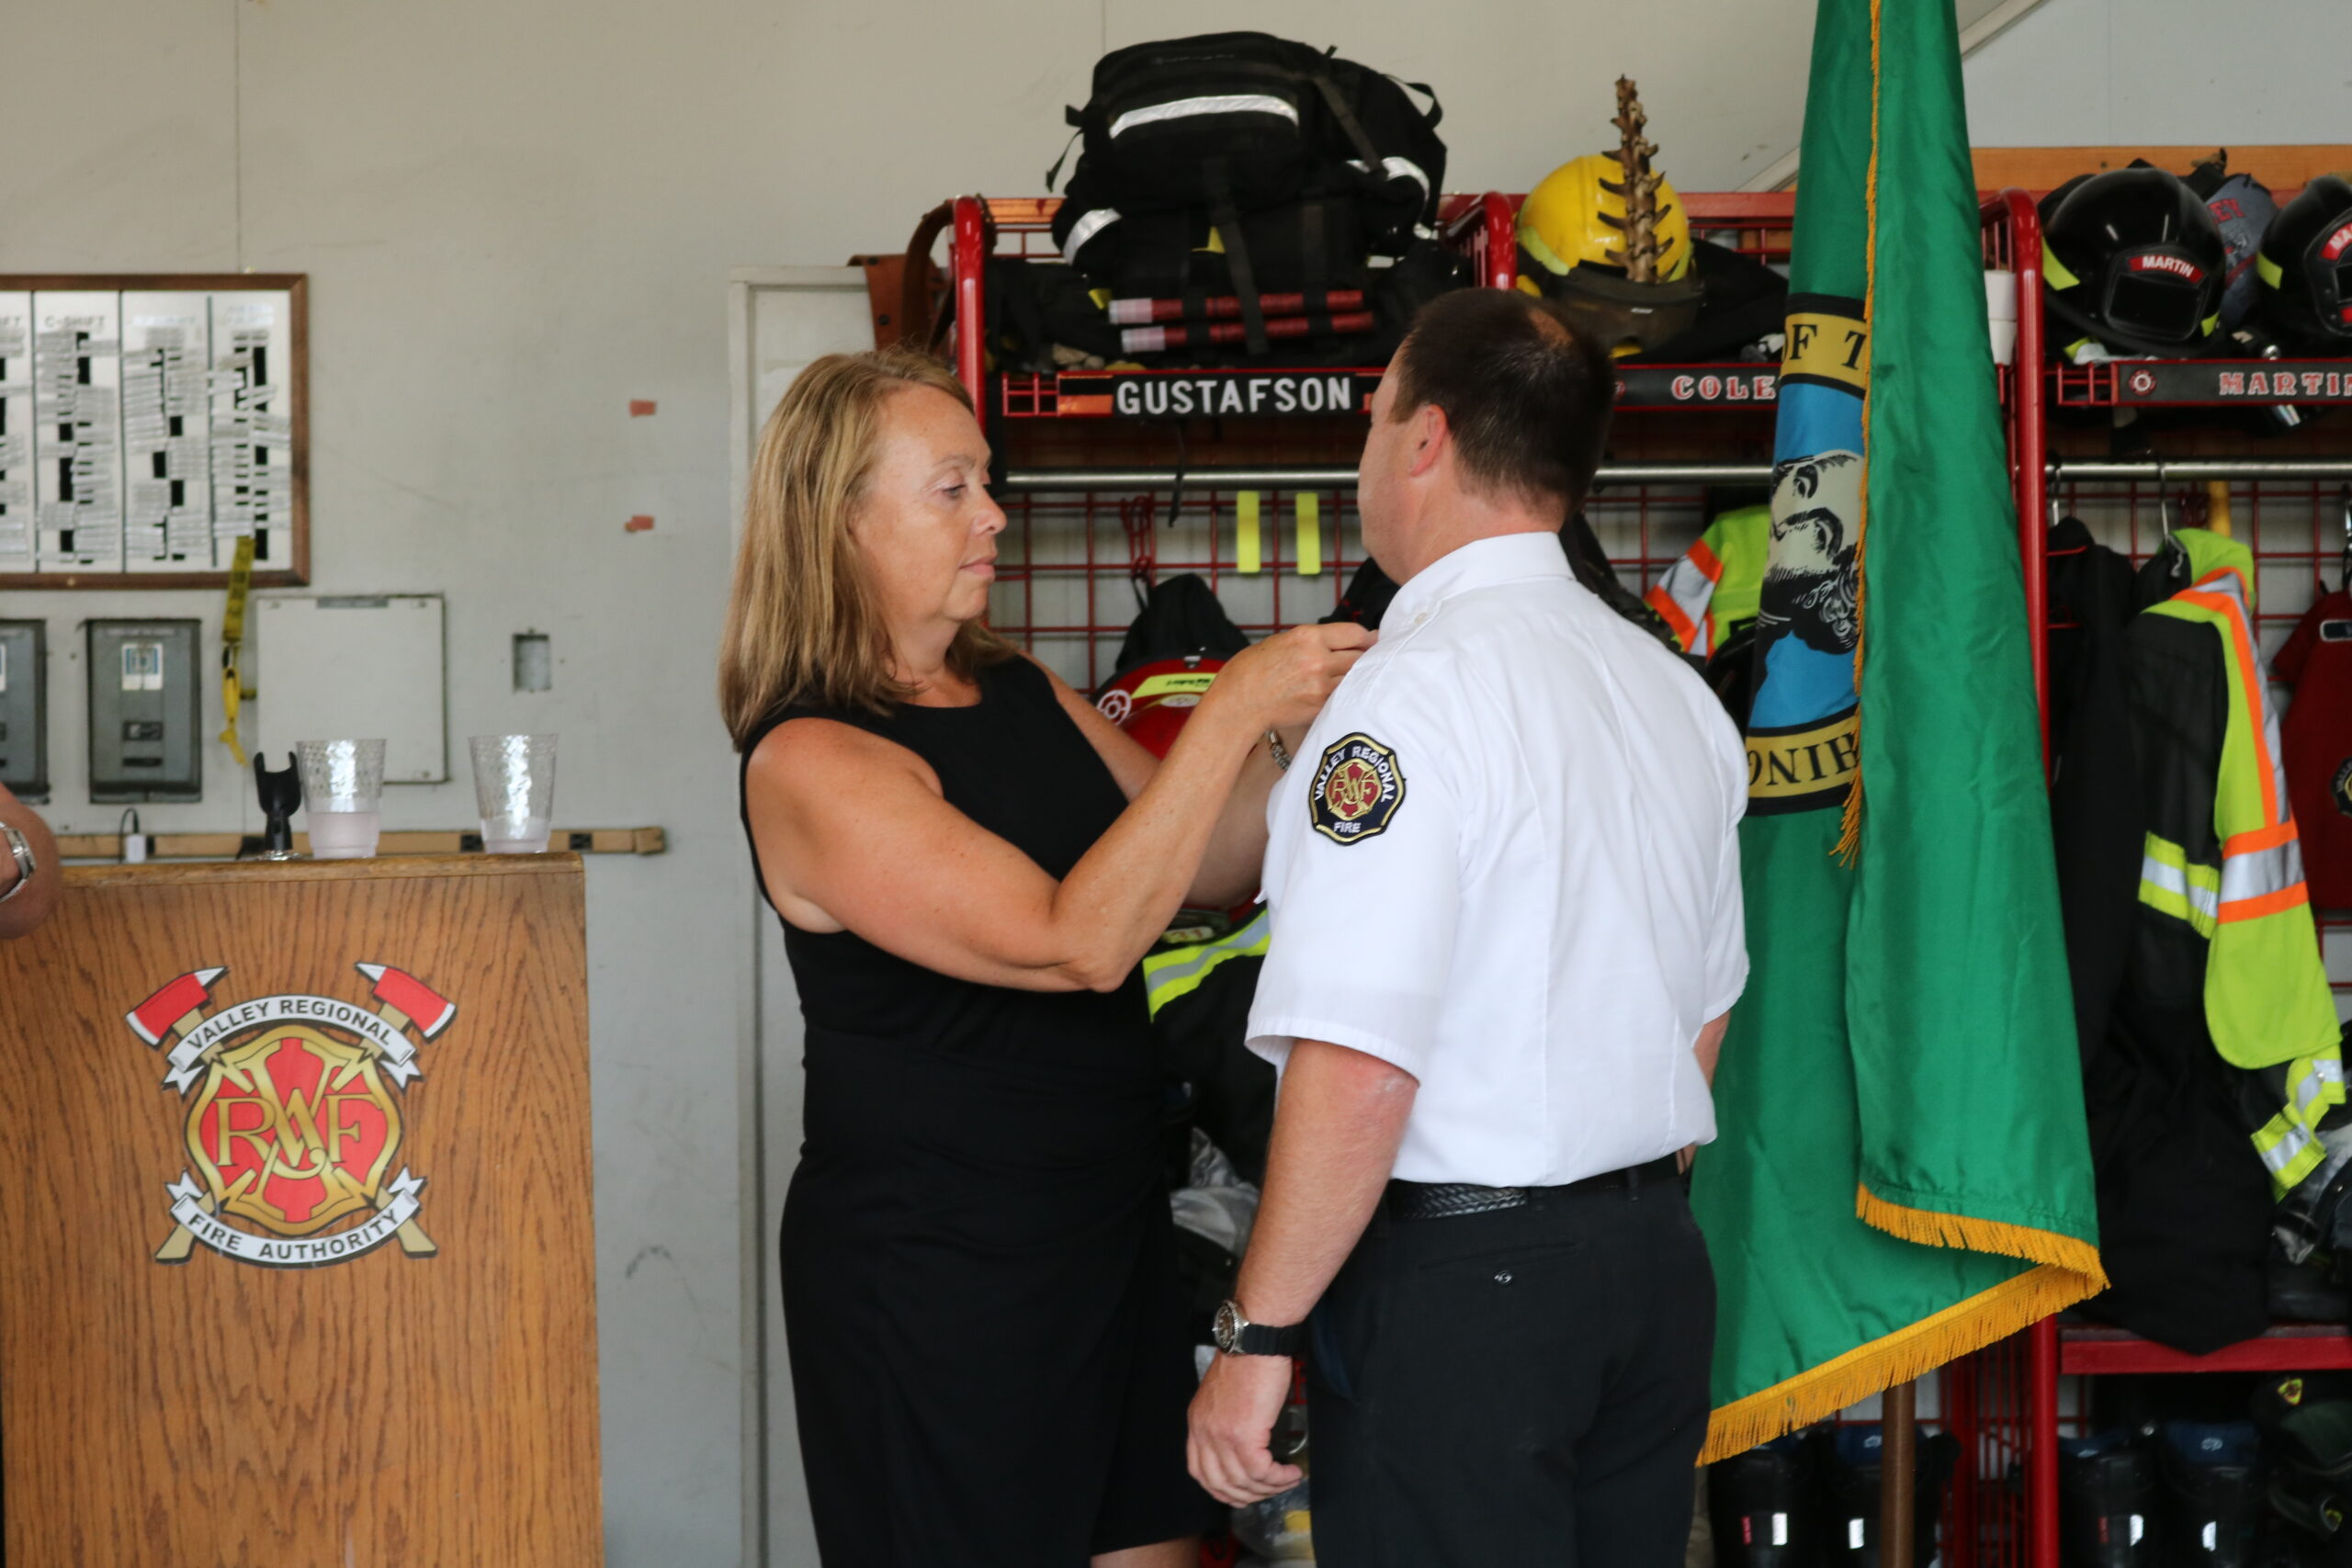 VRFA Chief Brad Thompson receives his Chief's pin, placed on his lapel by his wife.